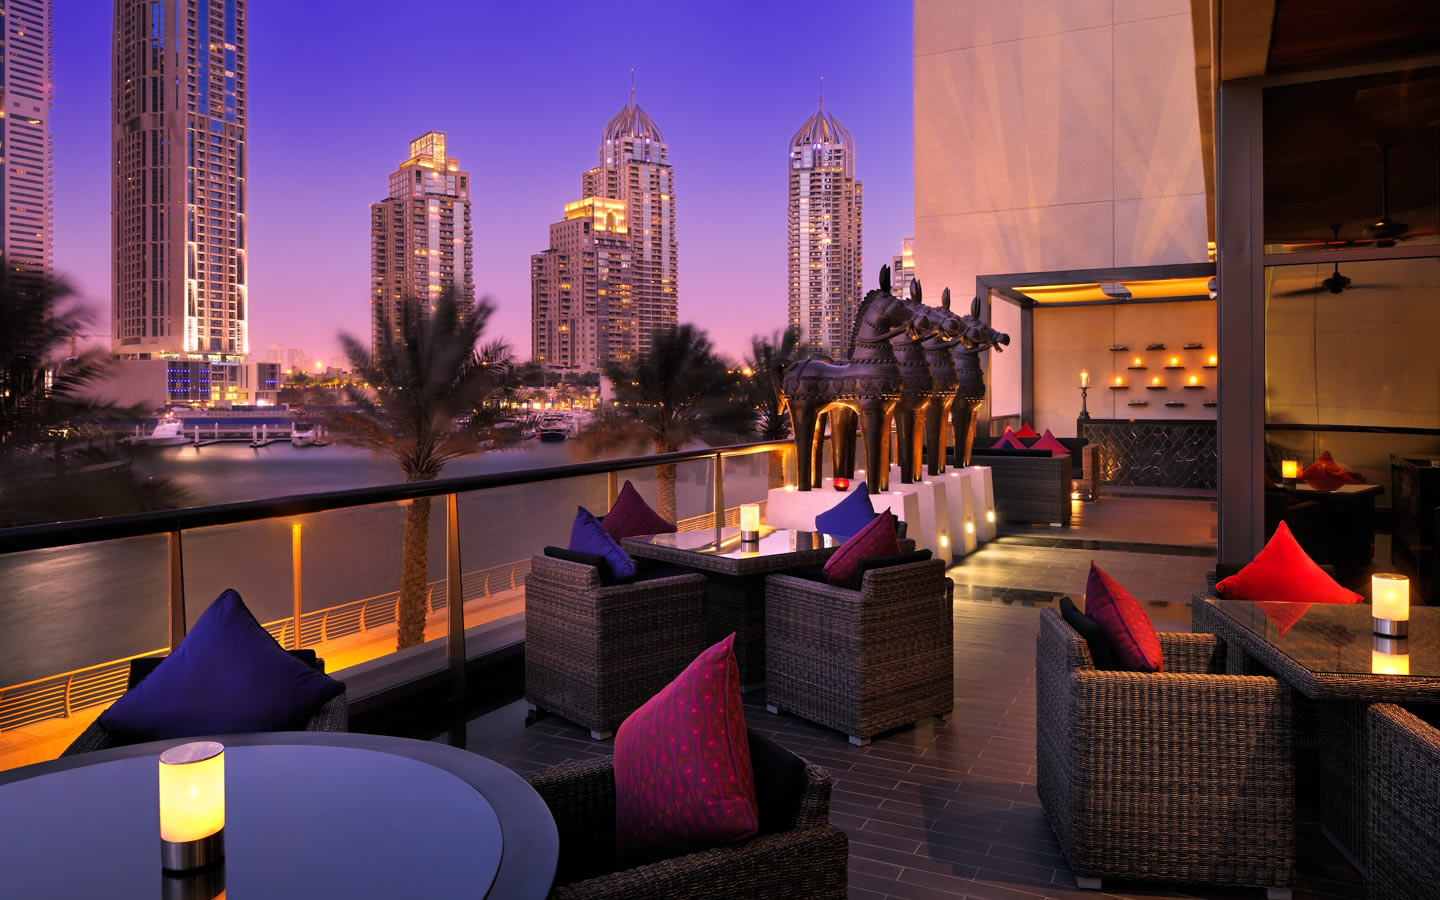 15 Best Outdoor Terraces in Dubai - Indigo by Vineet, Grosvenor House